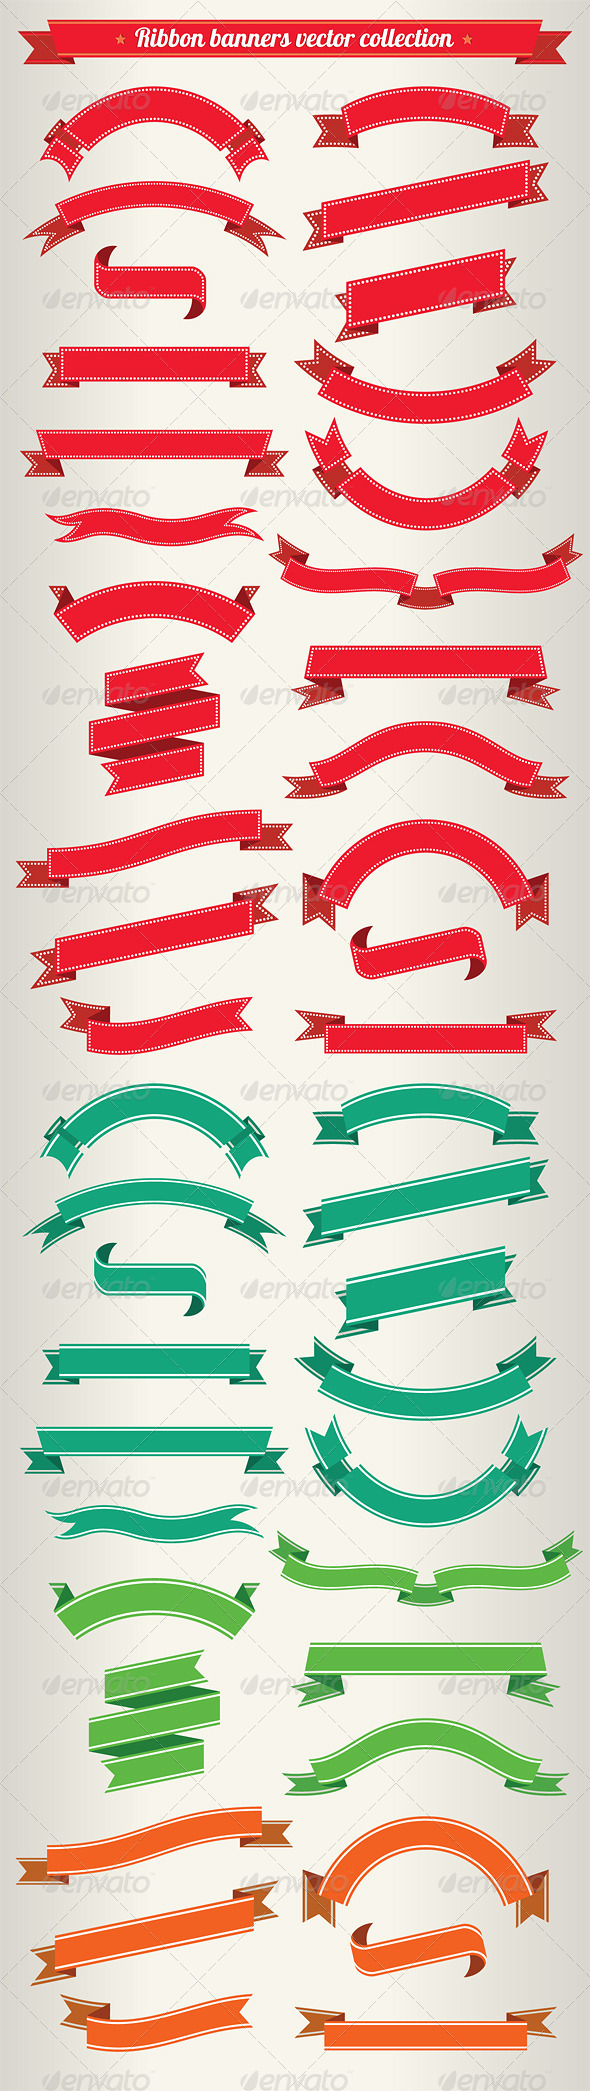 GraphicRiver Ribbon Banners Vector Collection 4266253